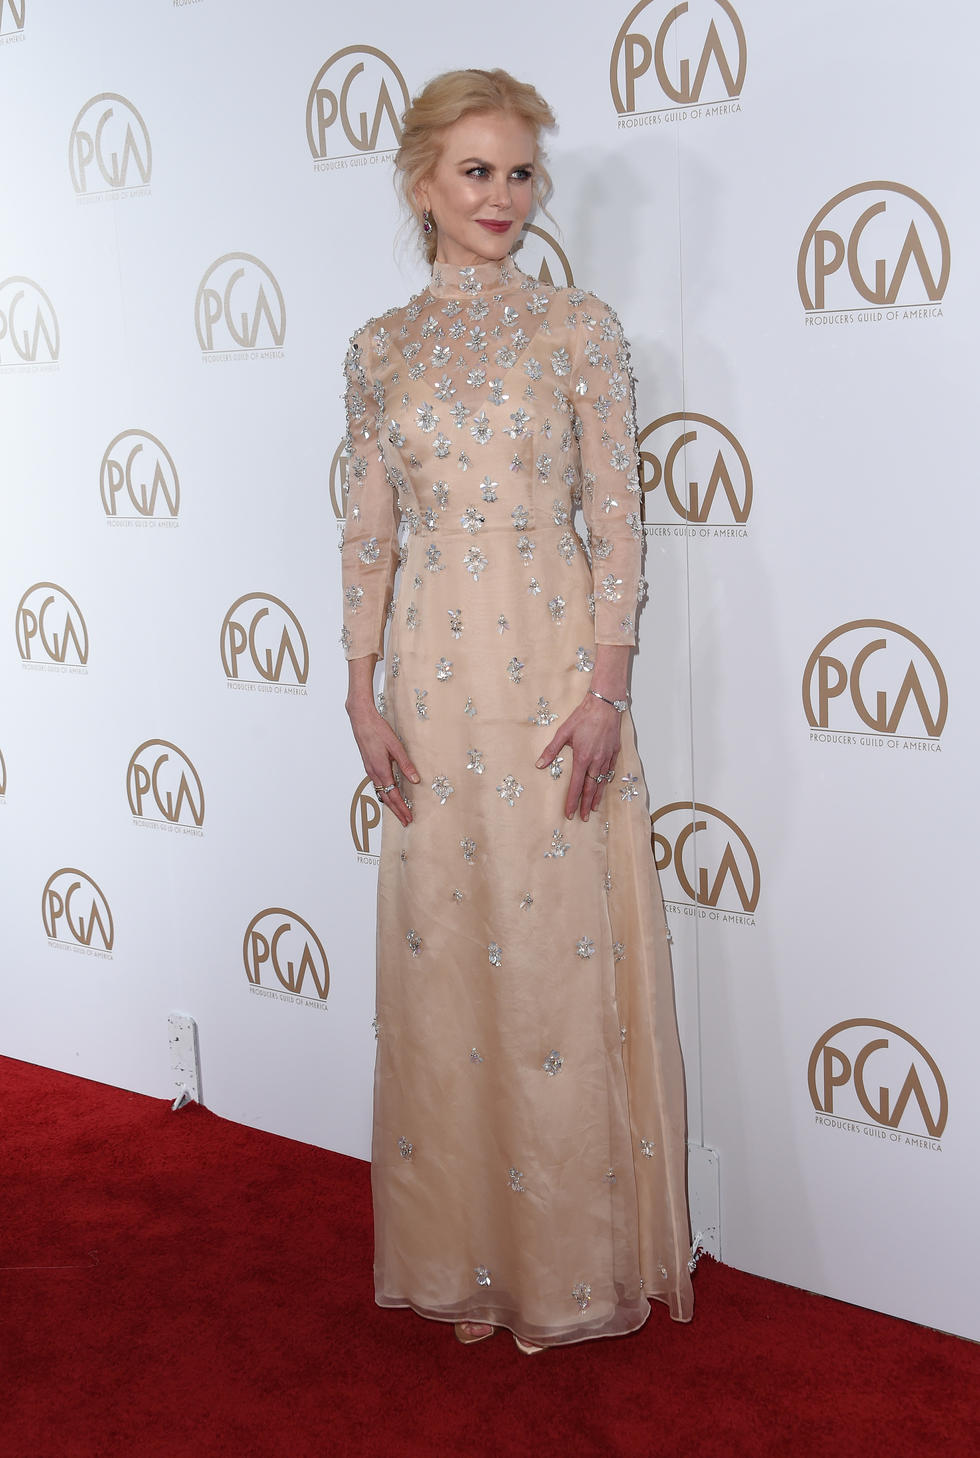 Nicole Kidman at The Producers Guild Awards